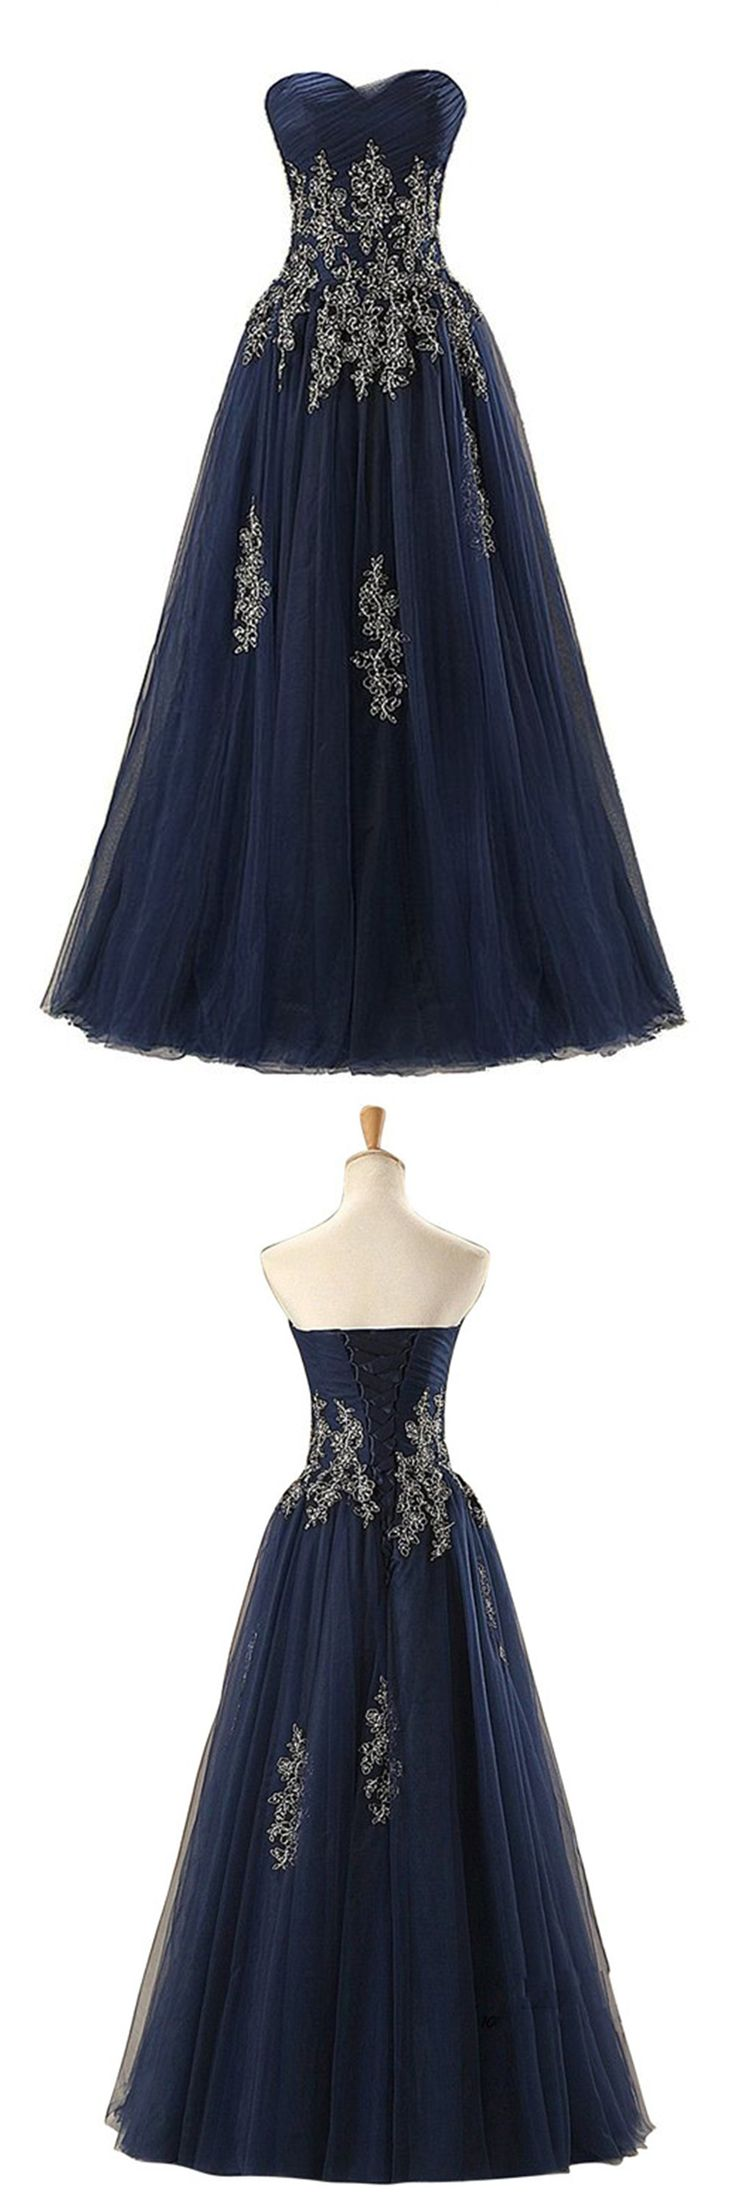 Elegant navy blue tulle long evening gown